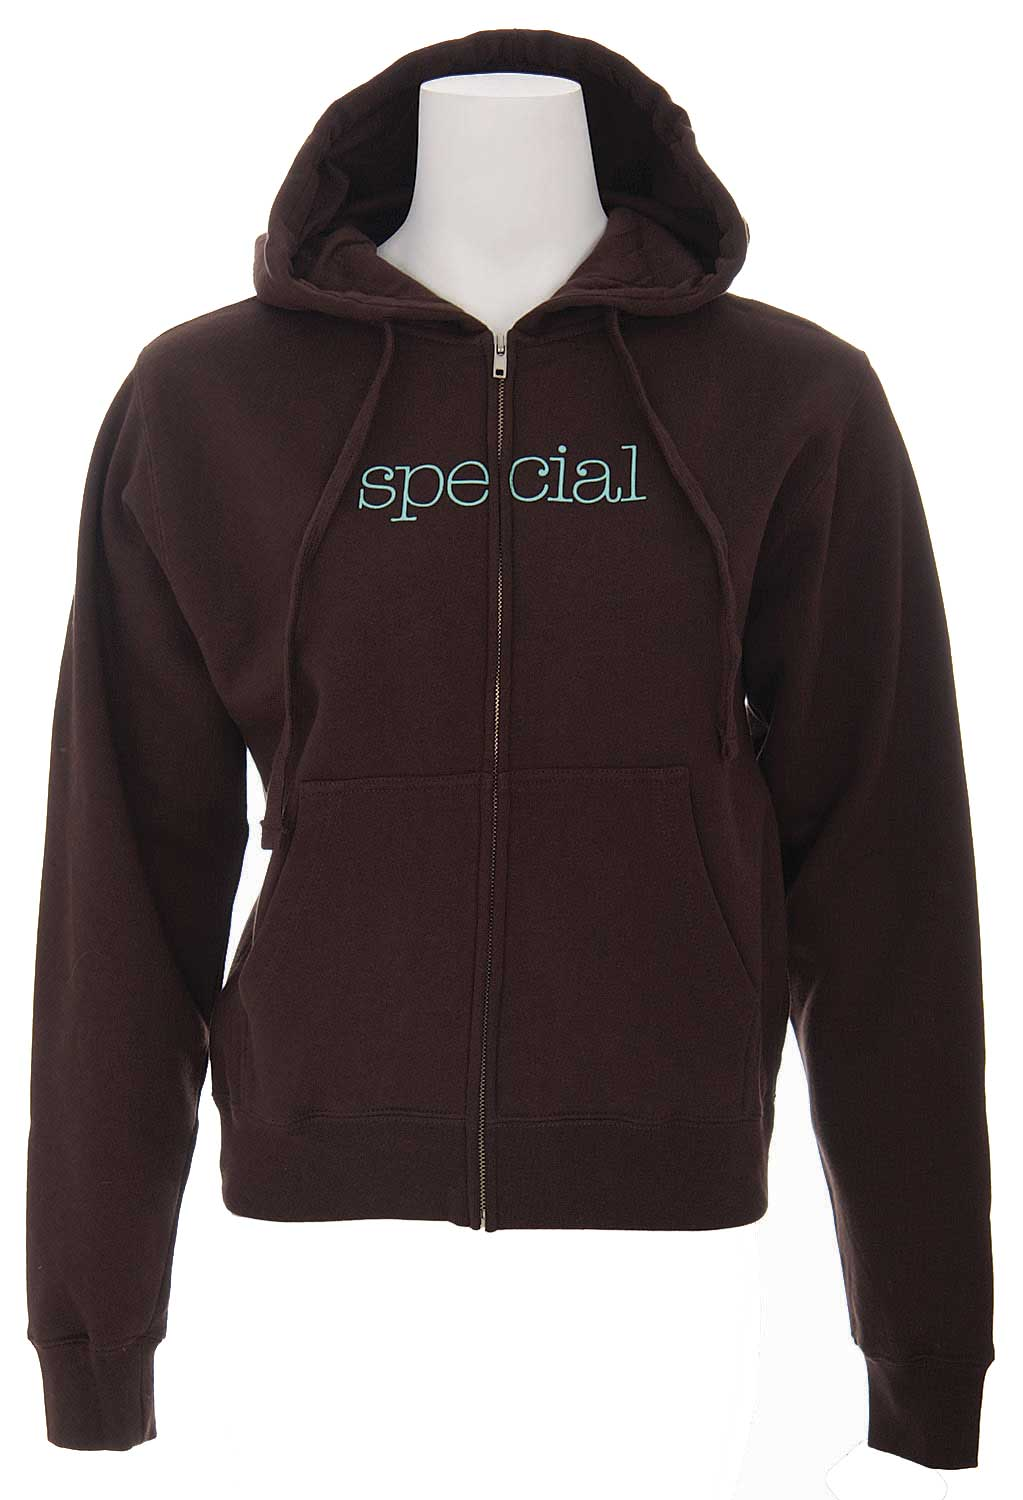 The Special Blend Special Women's Hoodie - 80% Cotton / 20% Polyester / 360gm - $20.95